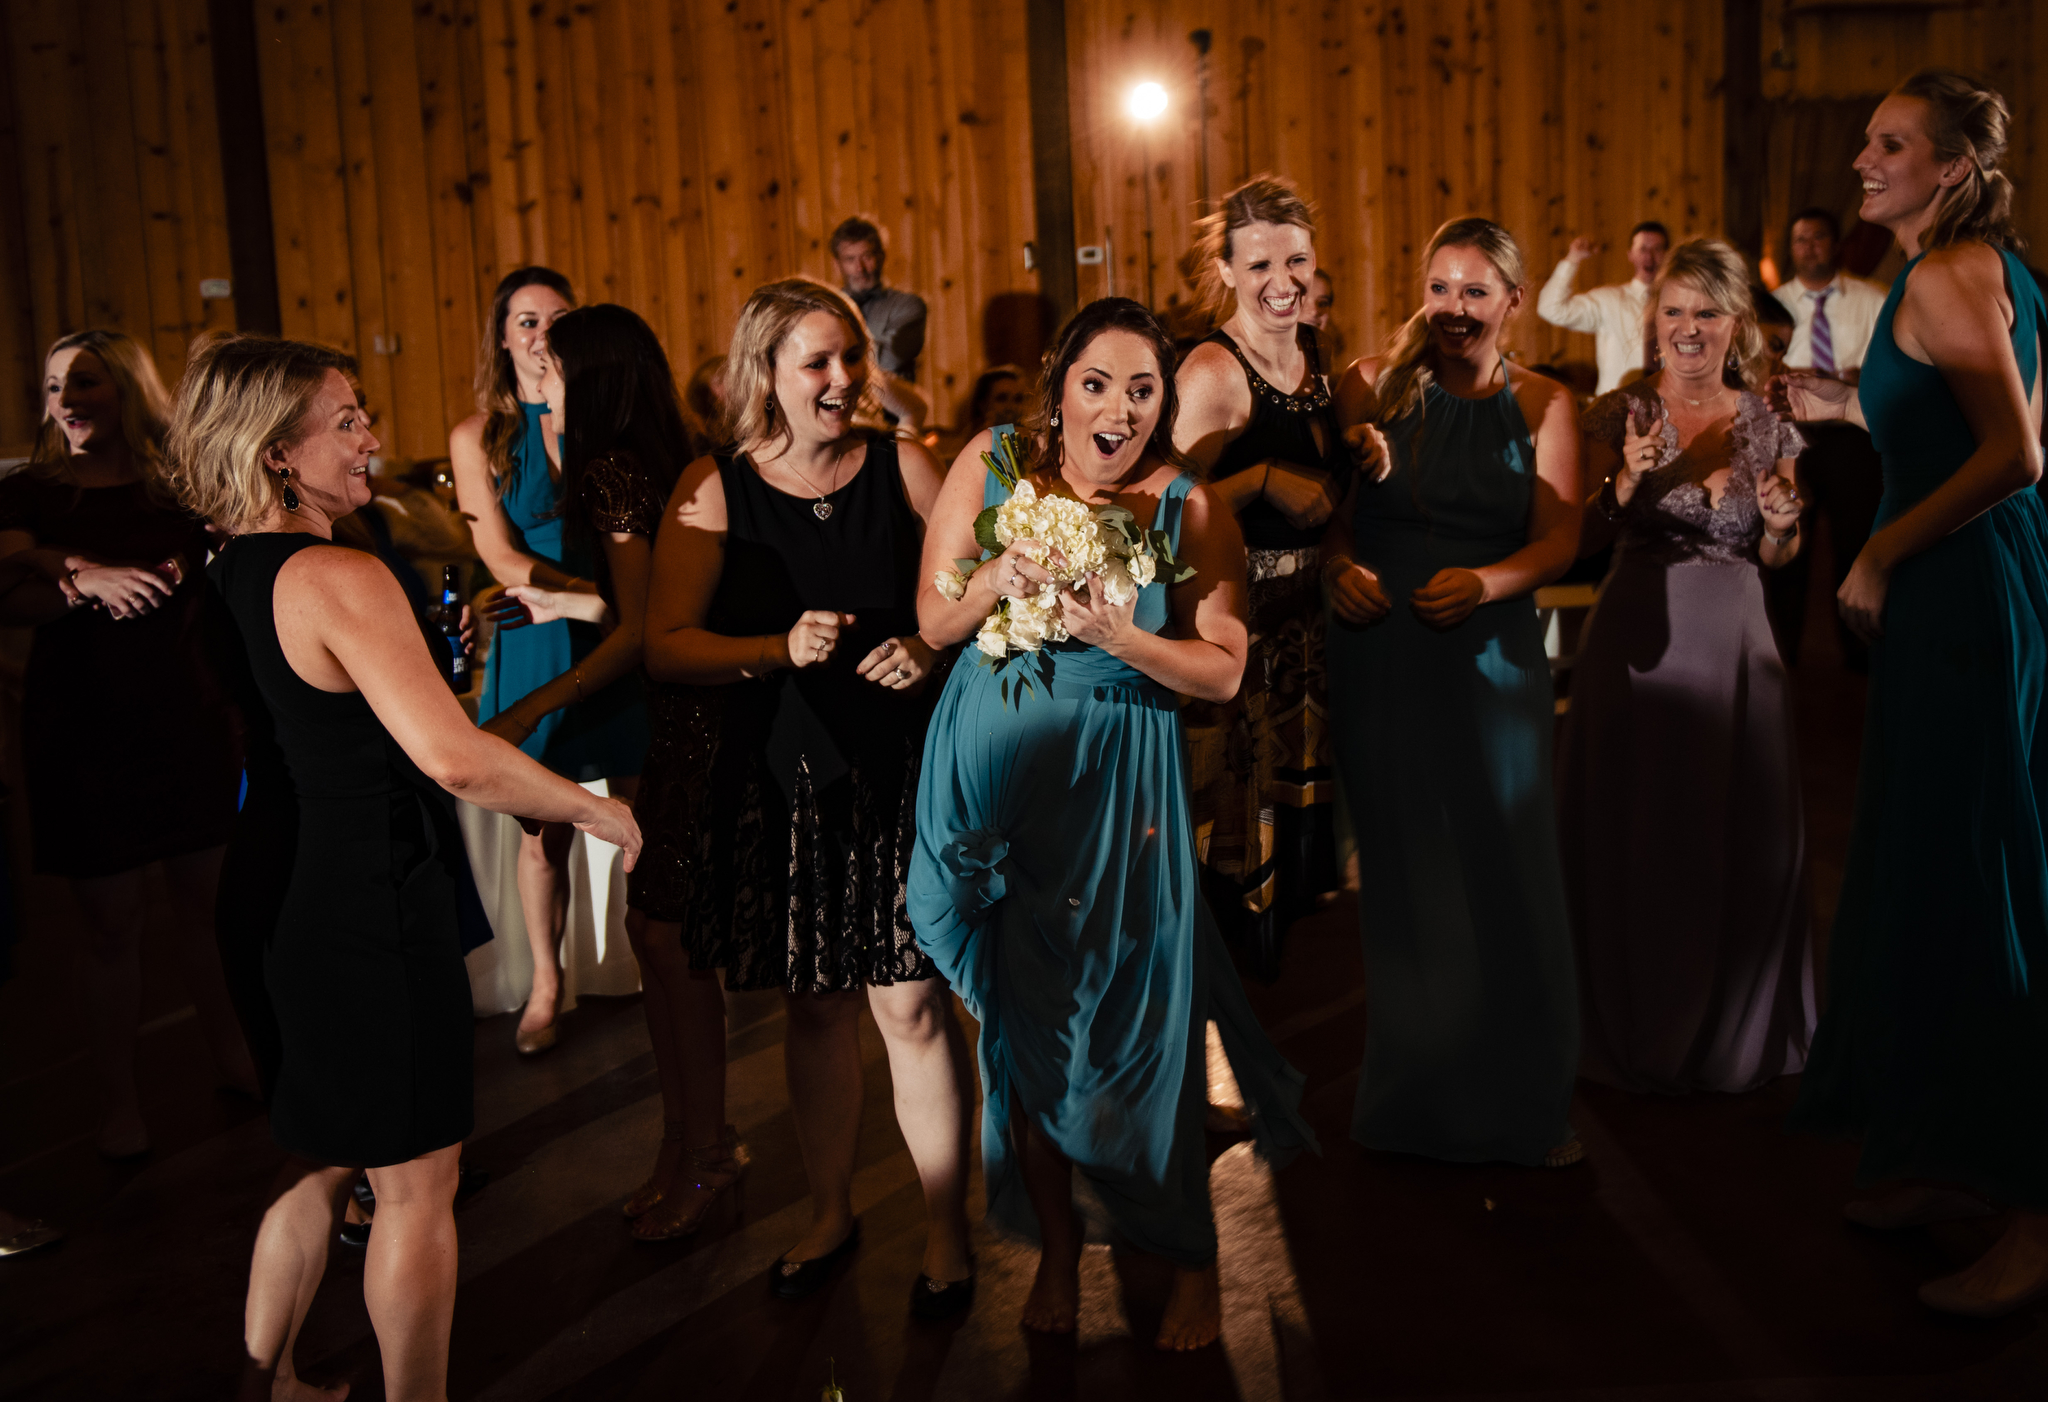 Farm at Brusharbor Wedding bouquet toss.jpg